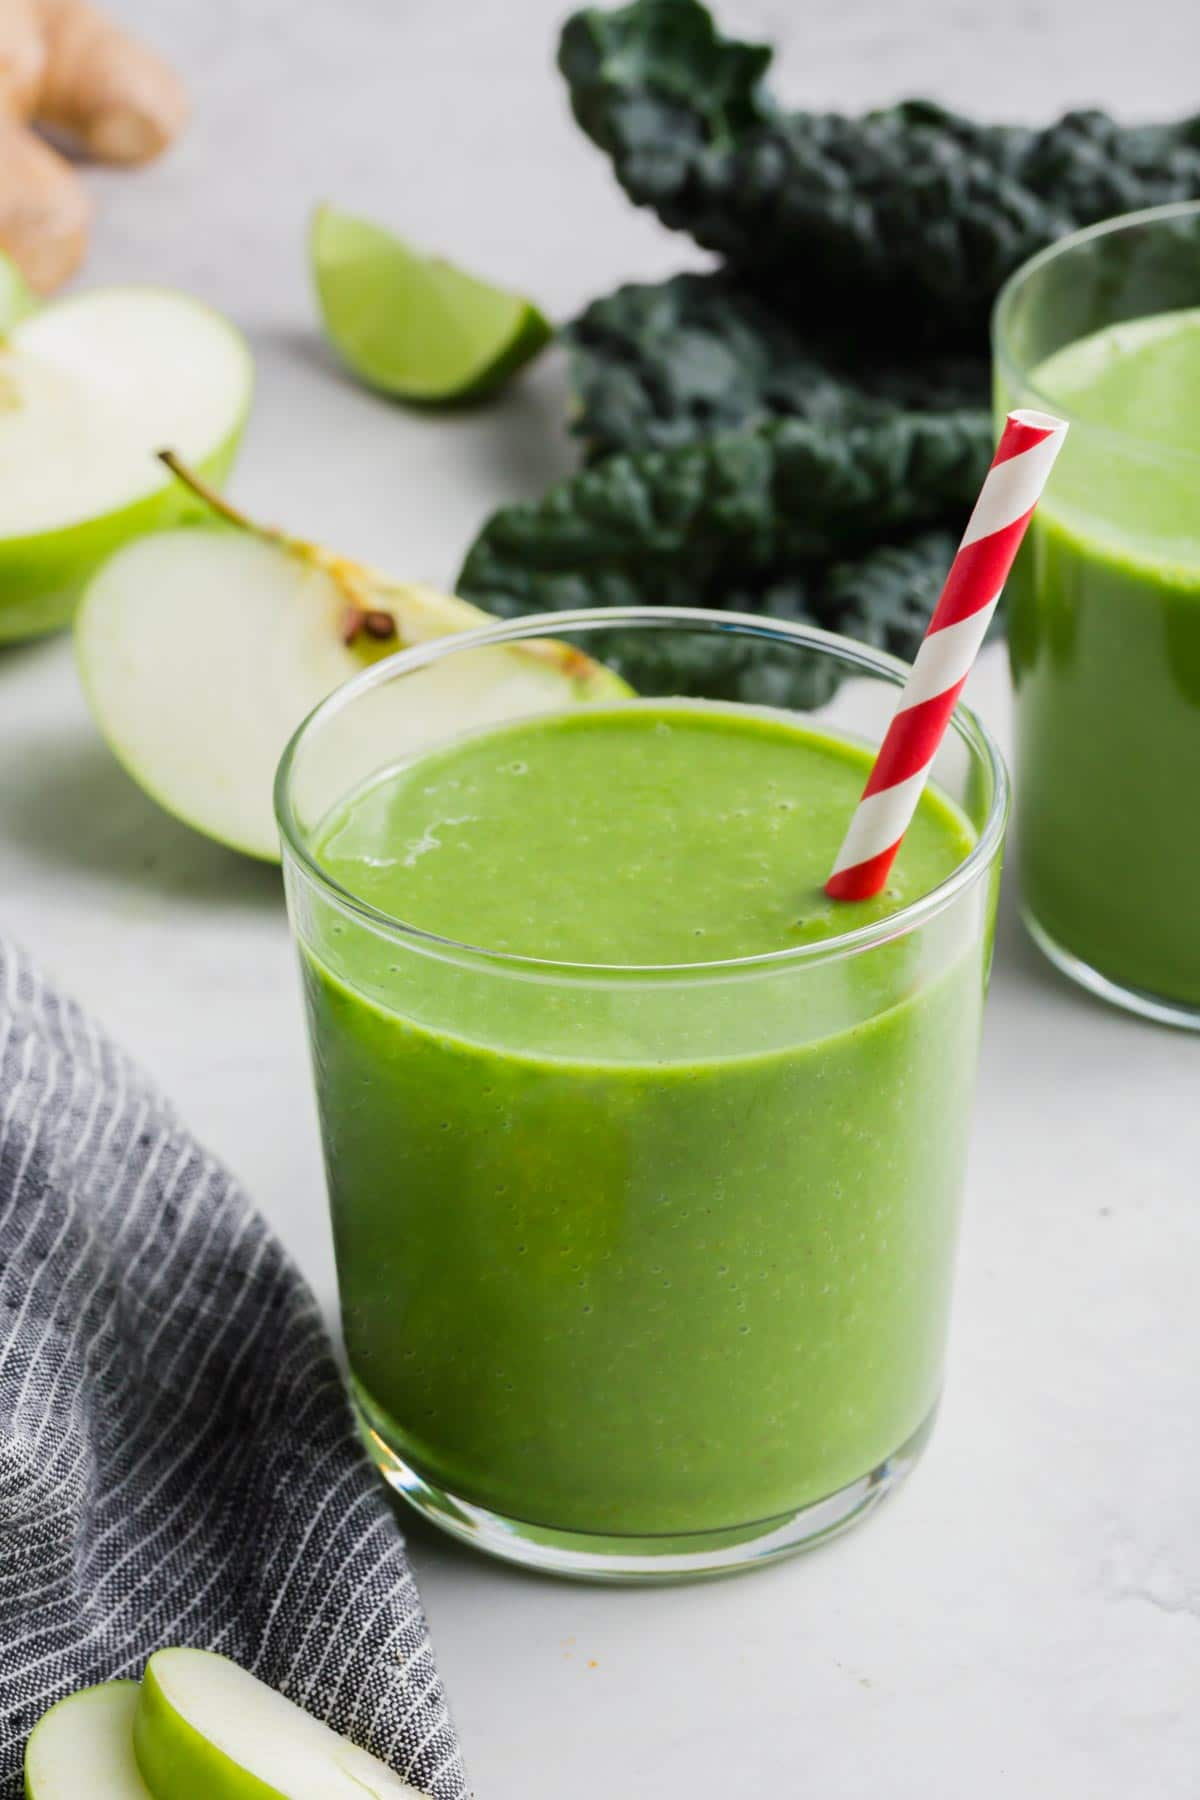 A glass of apple and kale smoothie with a straw.